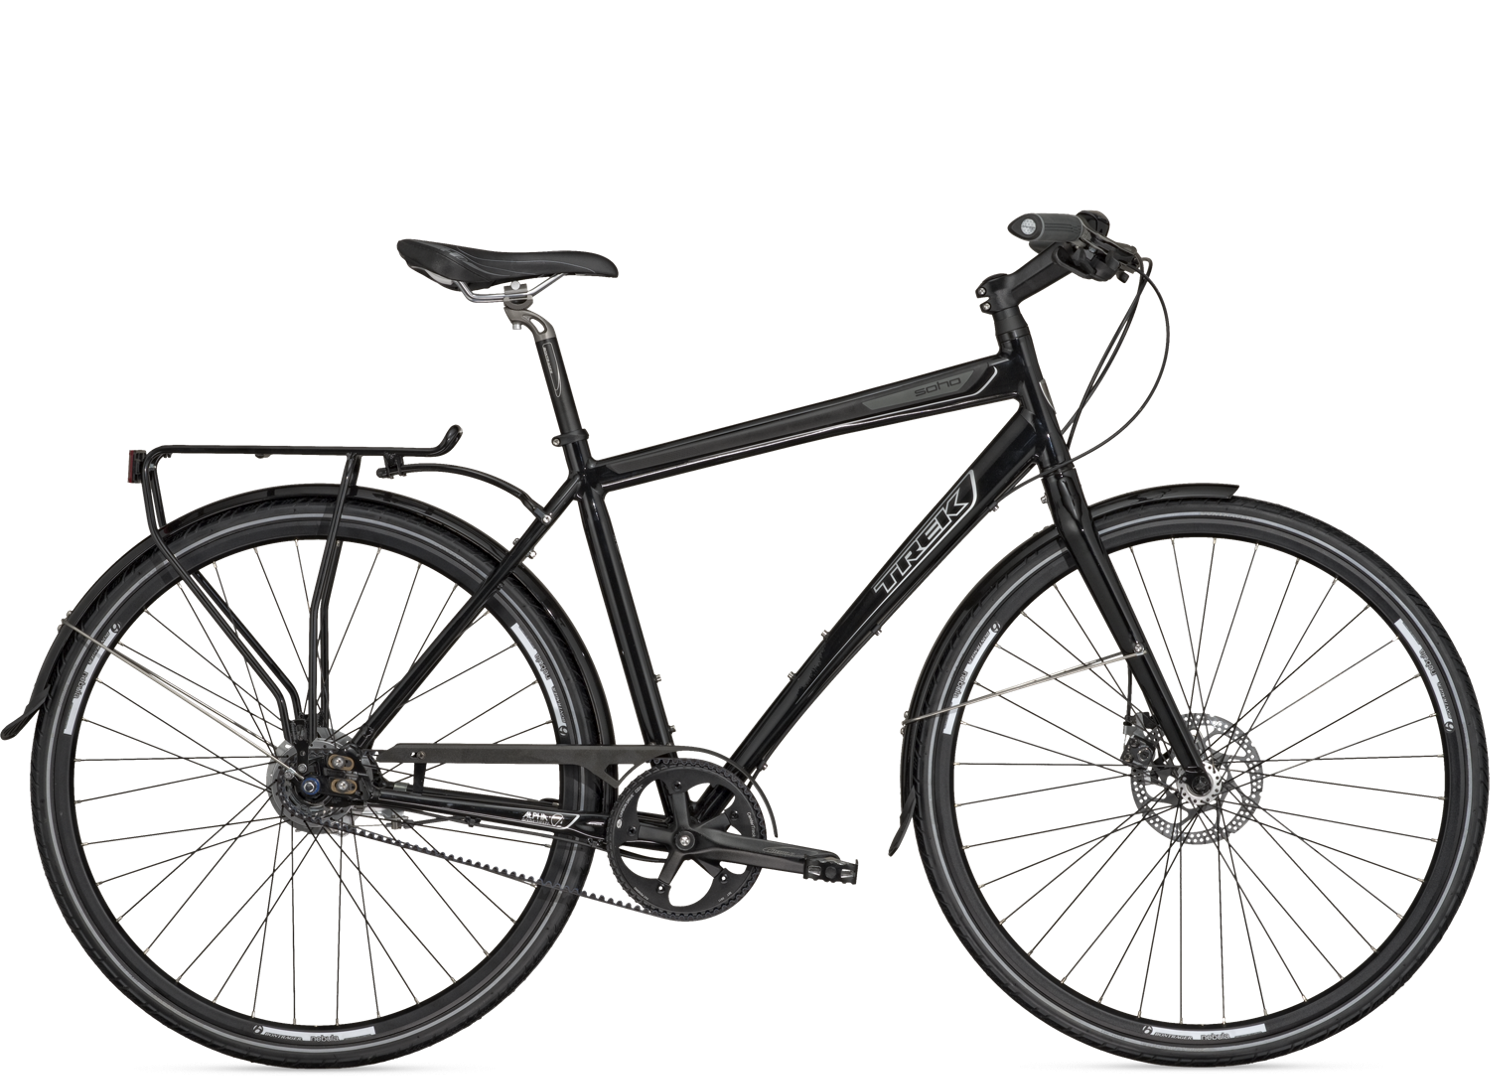 Trek Soho Deluxe With A Gates Carbon Belt Drive Disc Brakes And